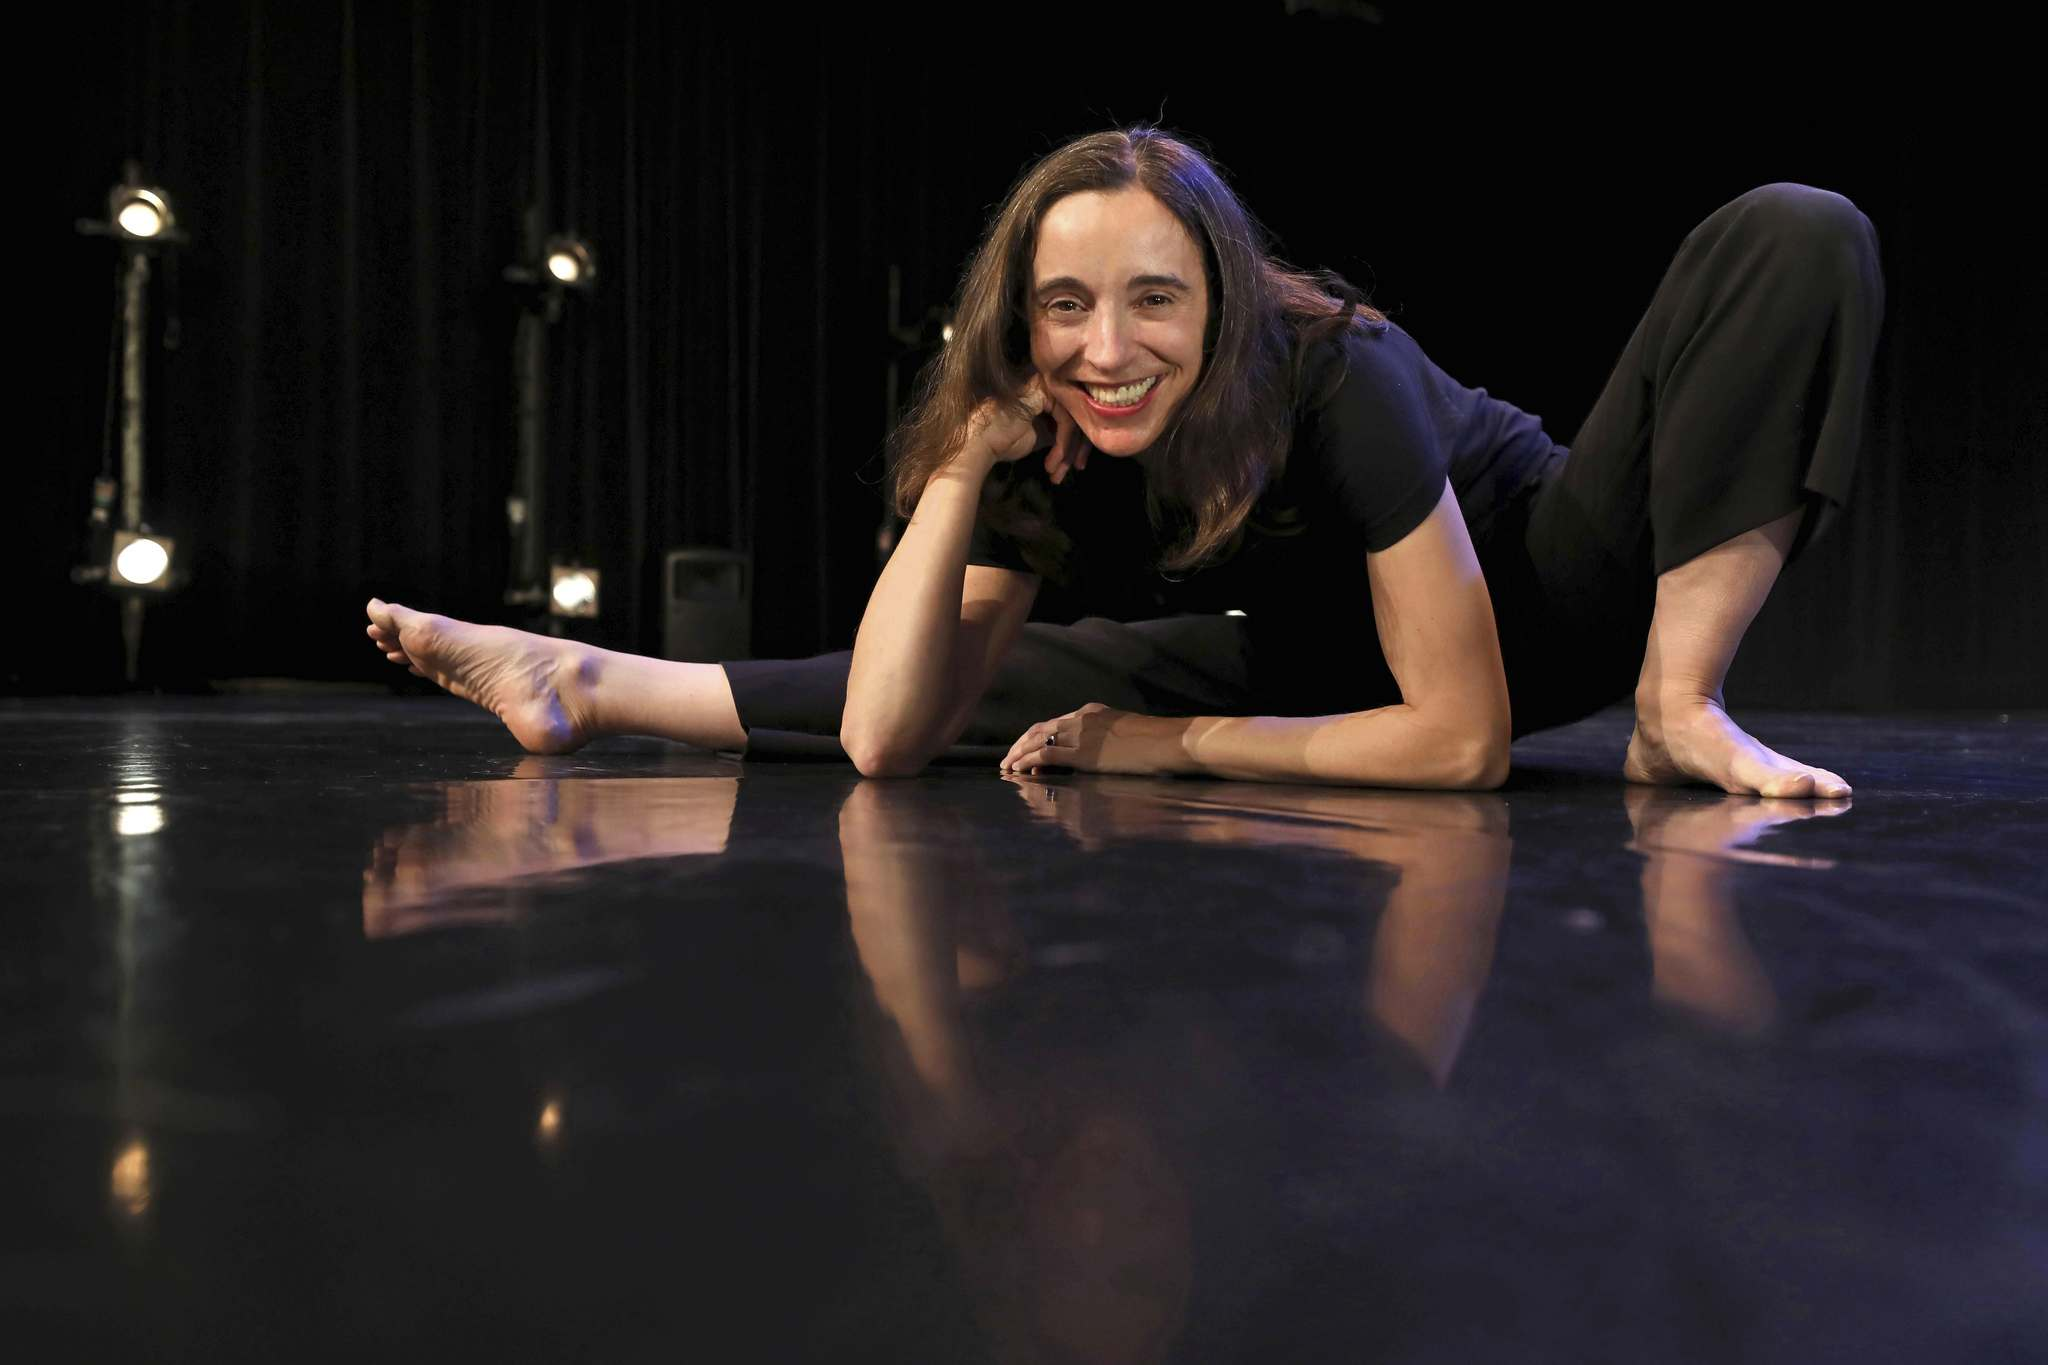 Jolene Bailie is the first female artistic director at Winnipeg's Contemporary Dancers since the departure of founder Rachel Browne in 1983. (Ruth Bonneville / Winnipeg Free Press)